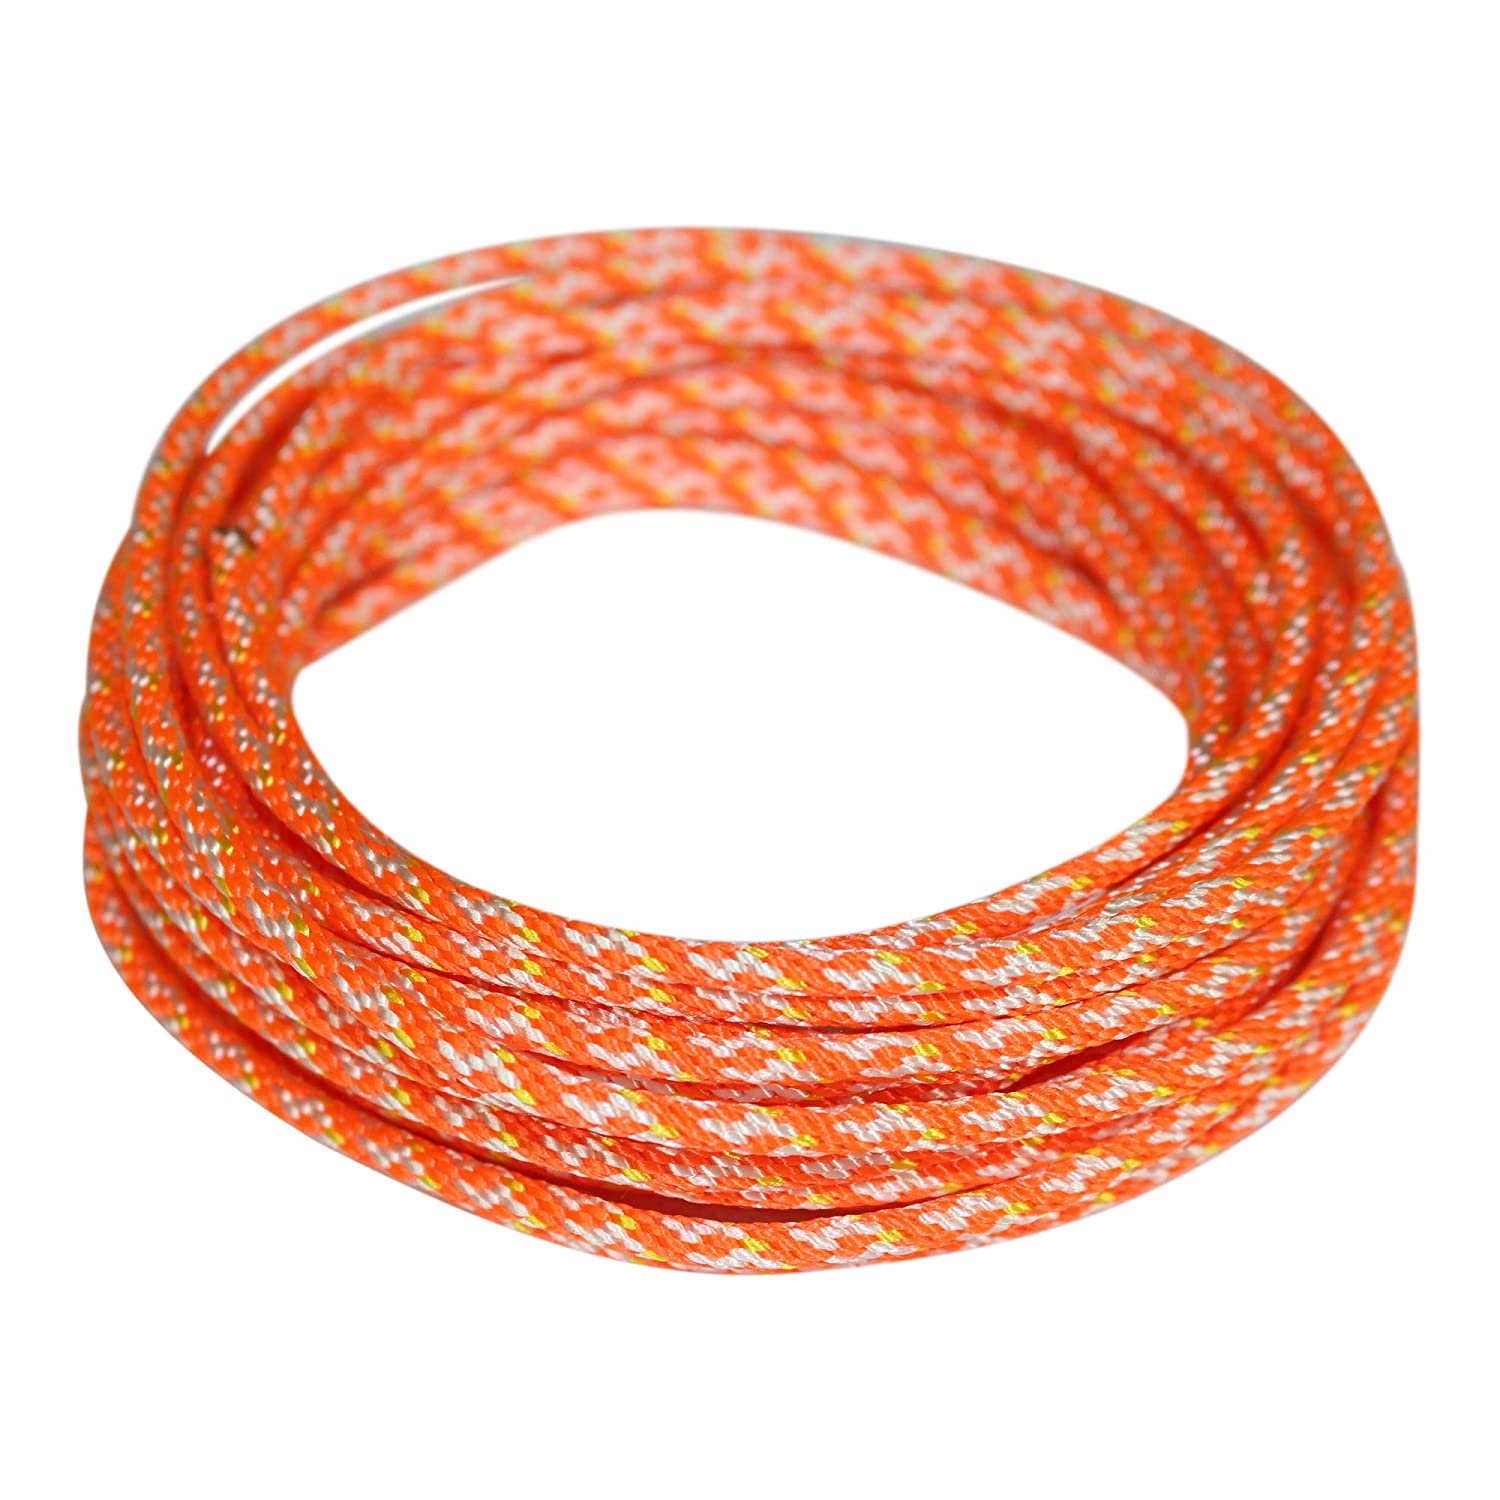 Replacement Cord Rope for Lawn Mowers Snowblowers Leaf Blowers More Small Engine Starter Rope Dacron Polyester Pull Cord Solid Braid Rope Generators #4 300 feet, Orange - SGT KNOTS